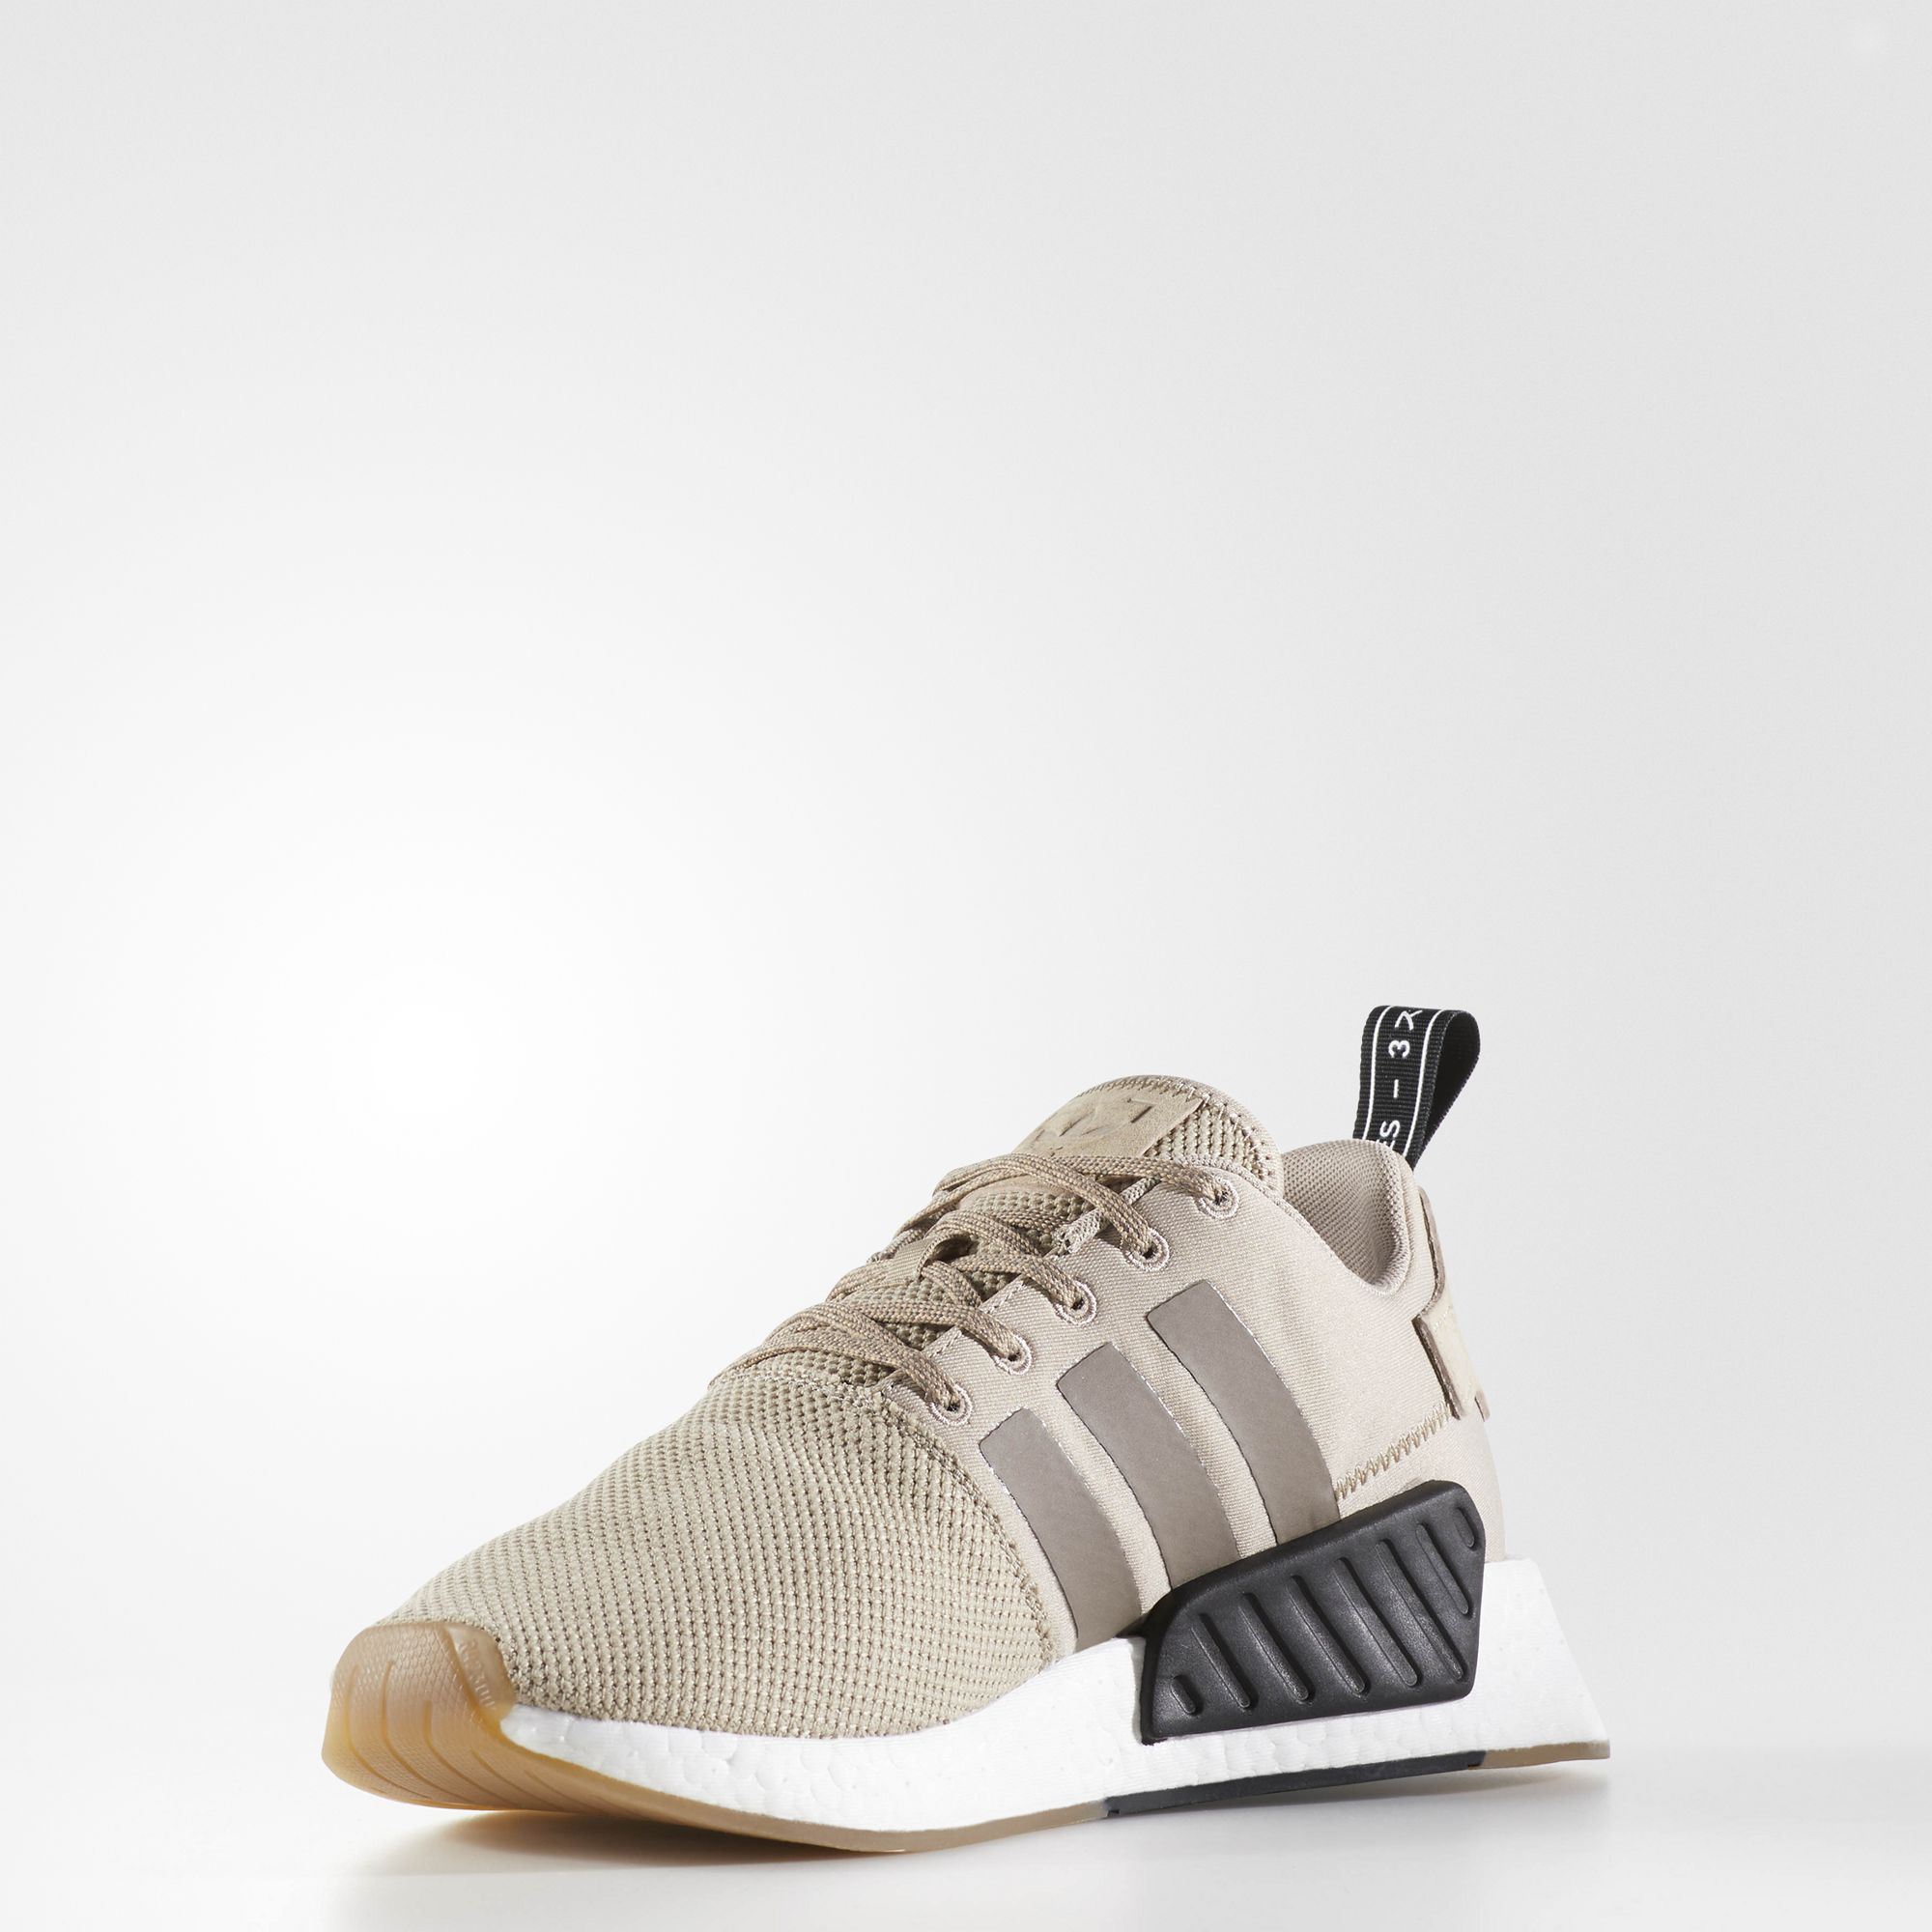 BY9916 adidas NMD R2 Simple Brown 5